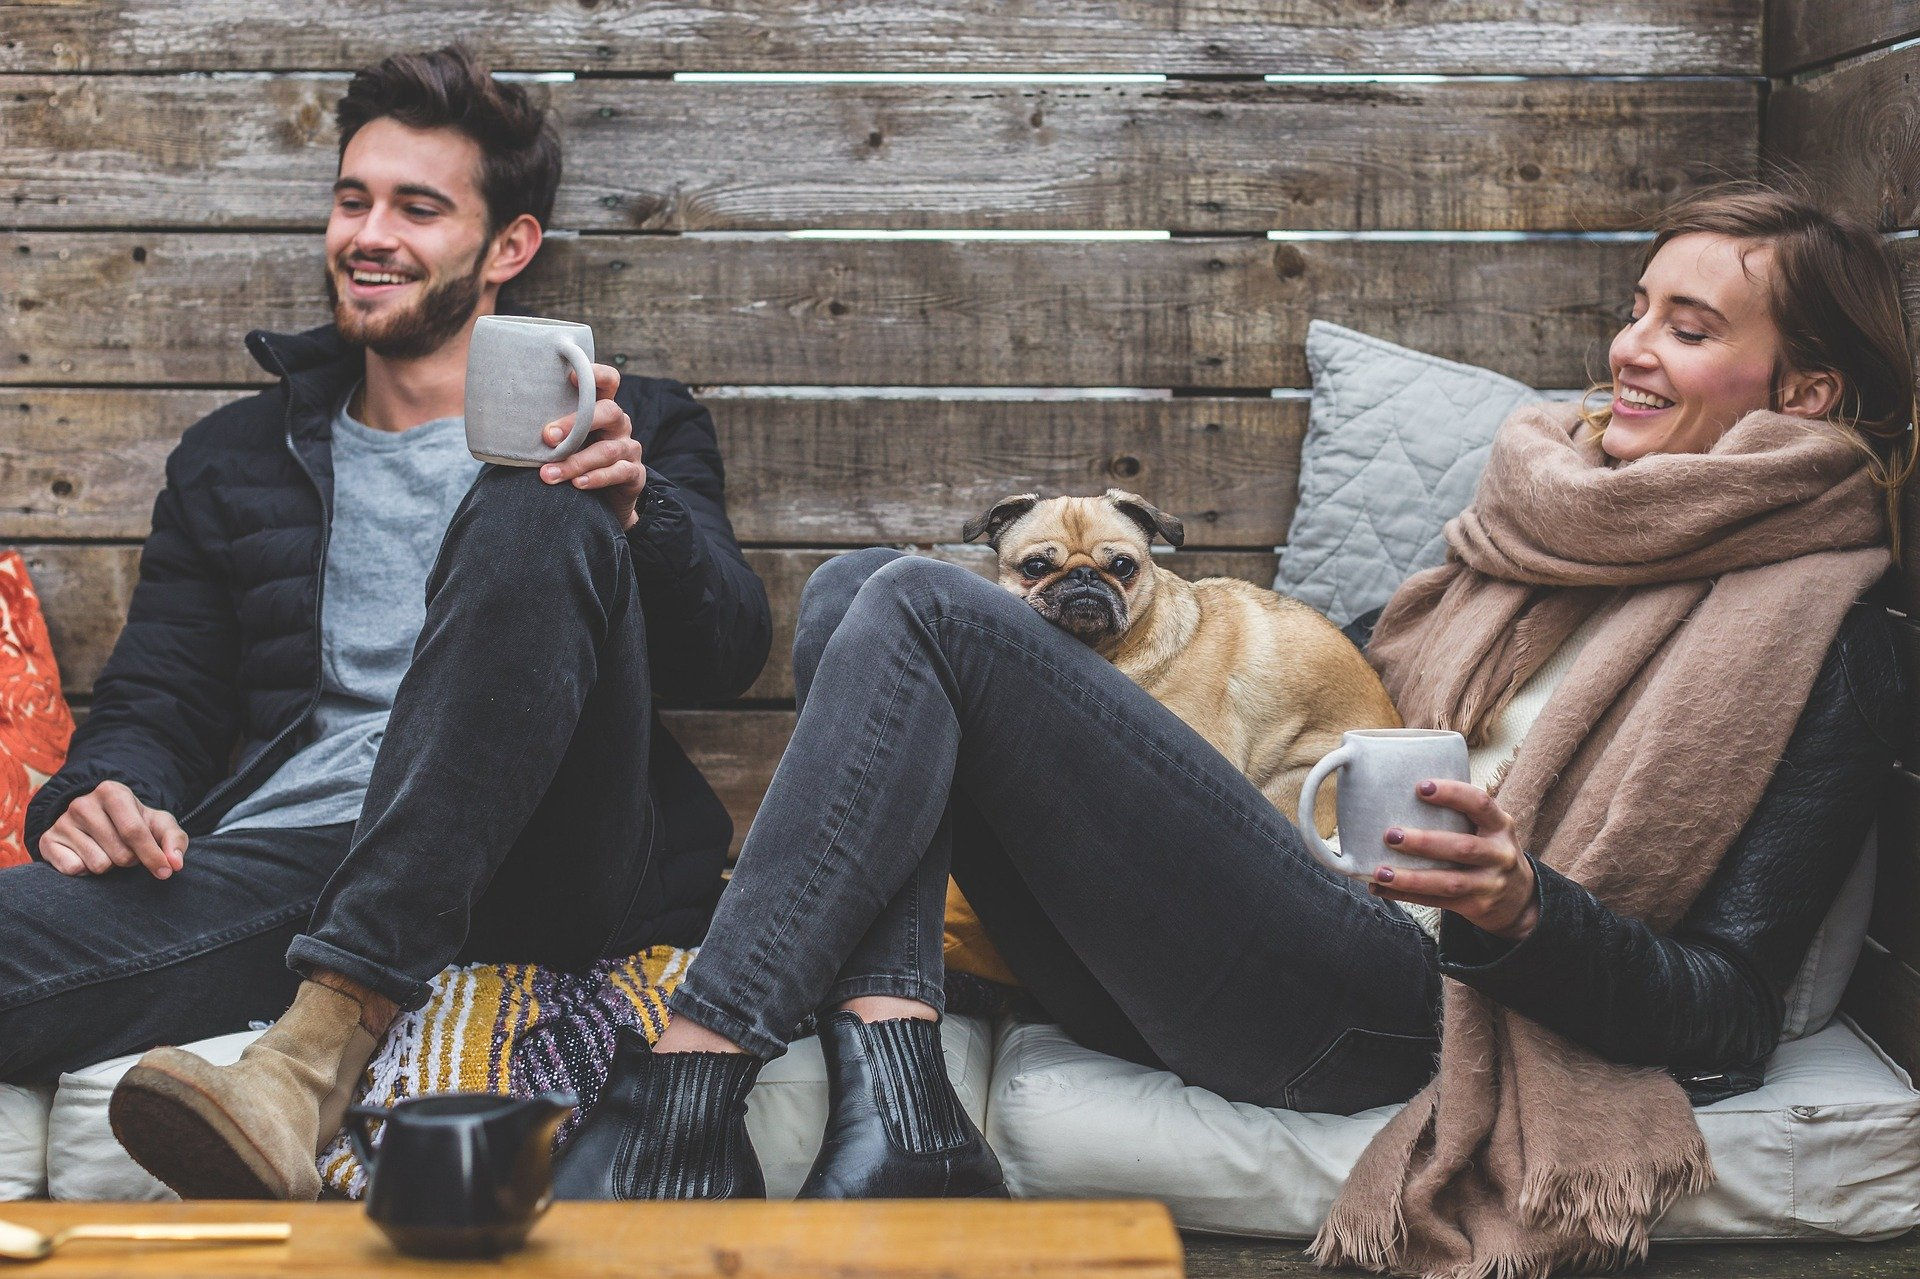 woman and man sitting having coffee and smiling